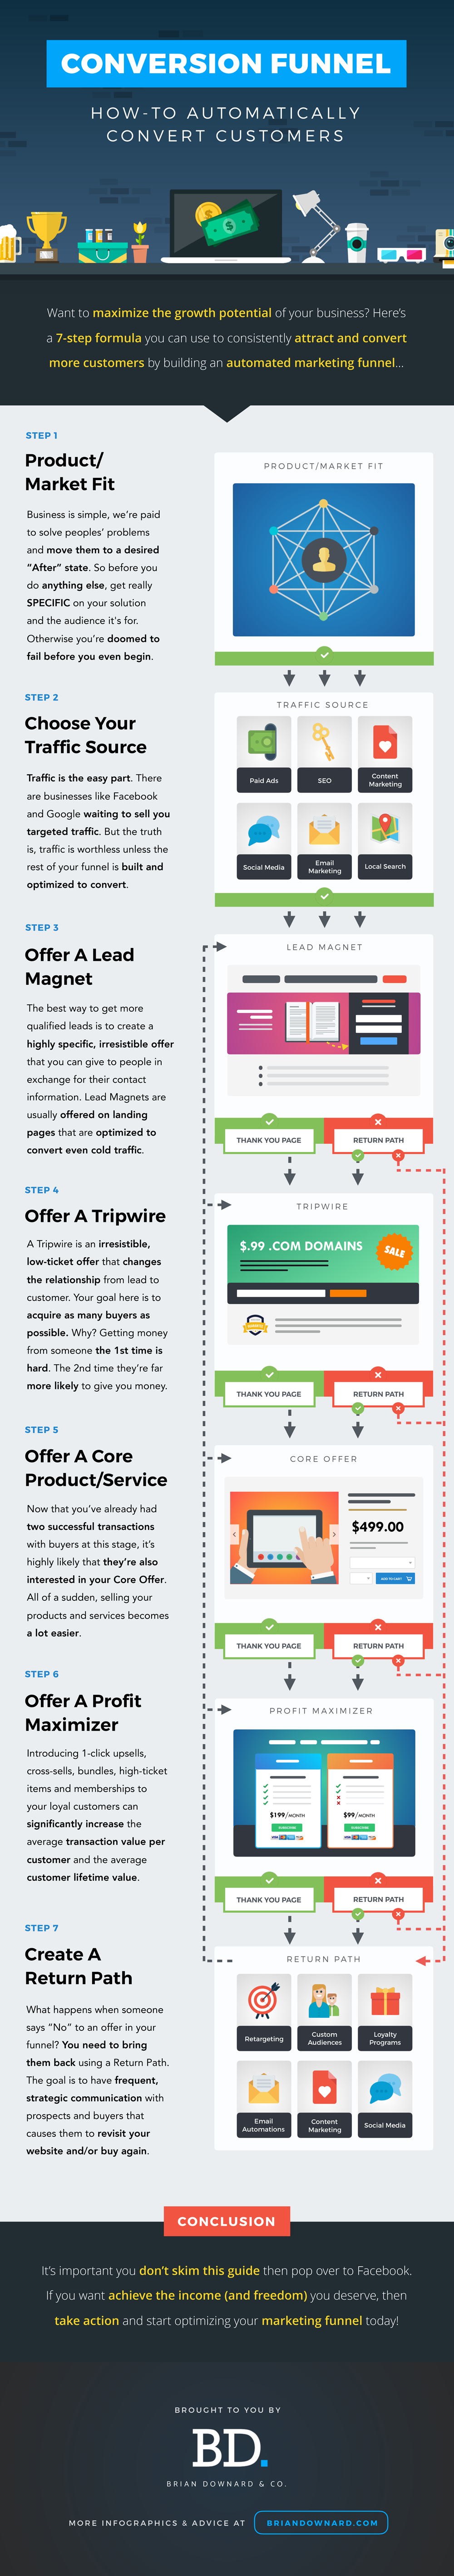 conversion-funnel-infographic